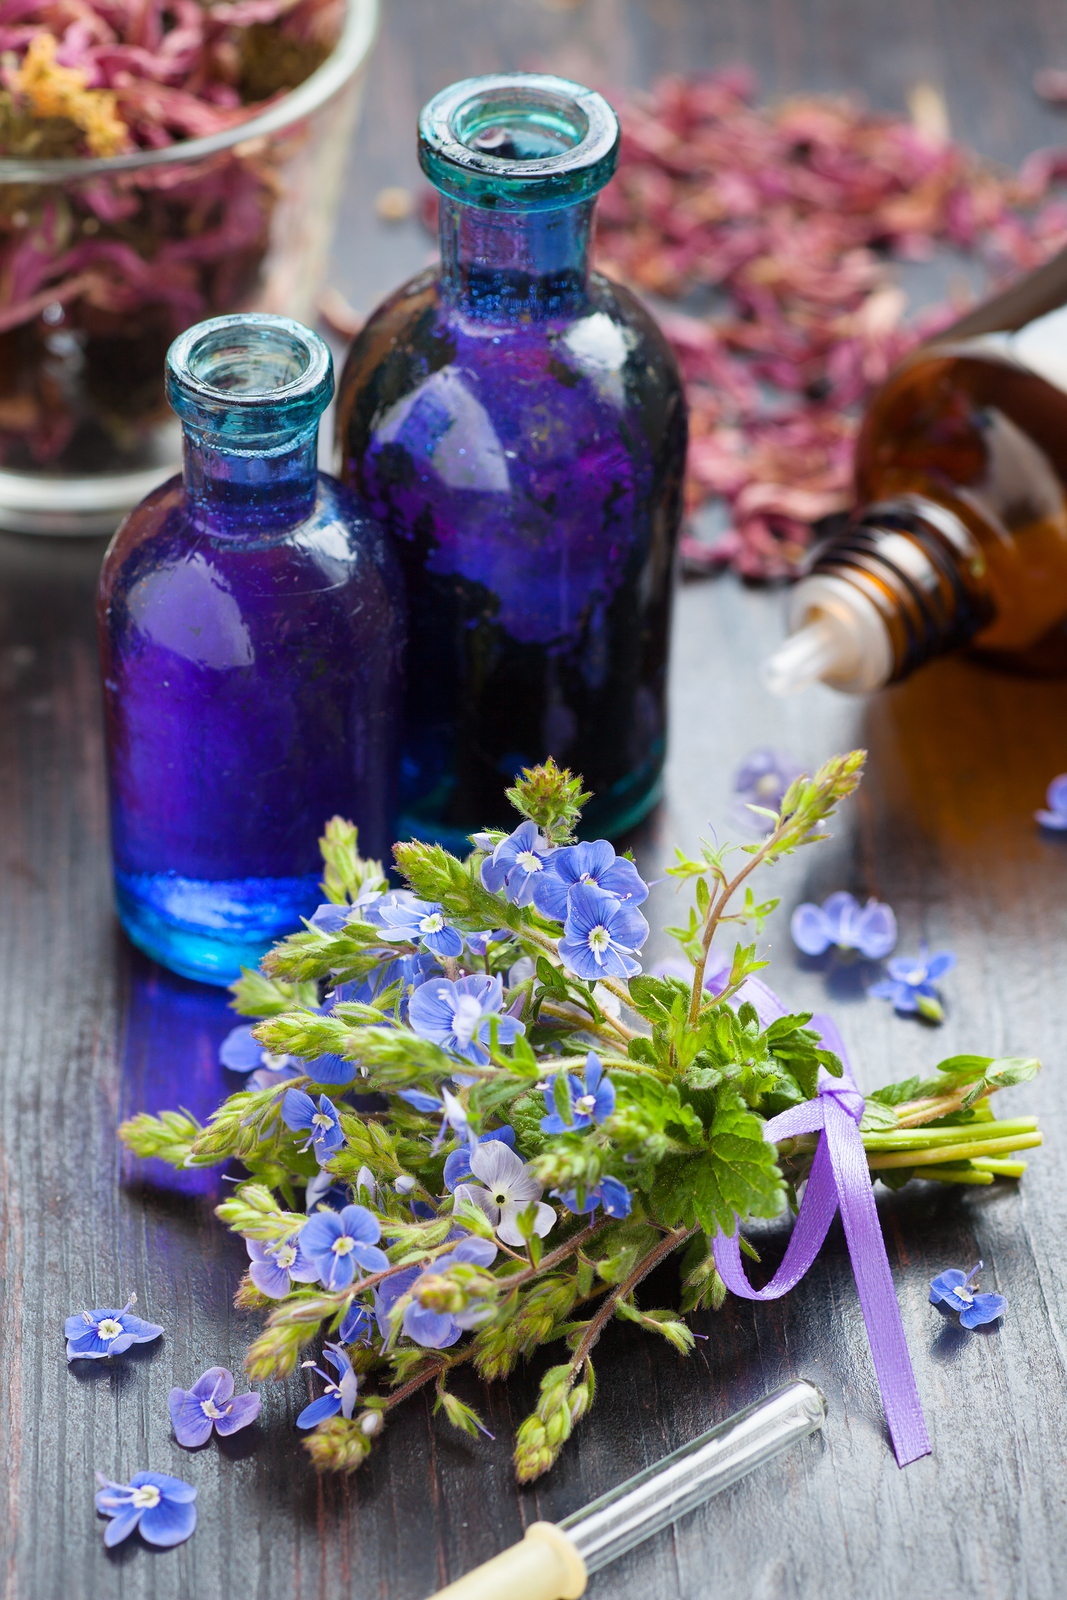 Top 10 Fragrance Oils for Soapmakers